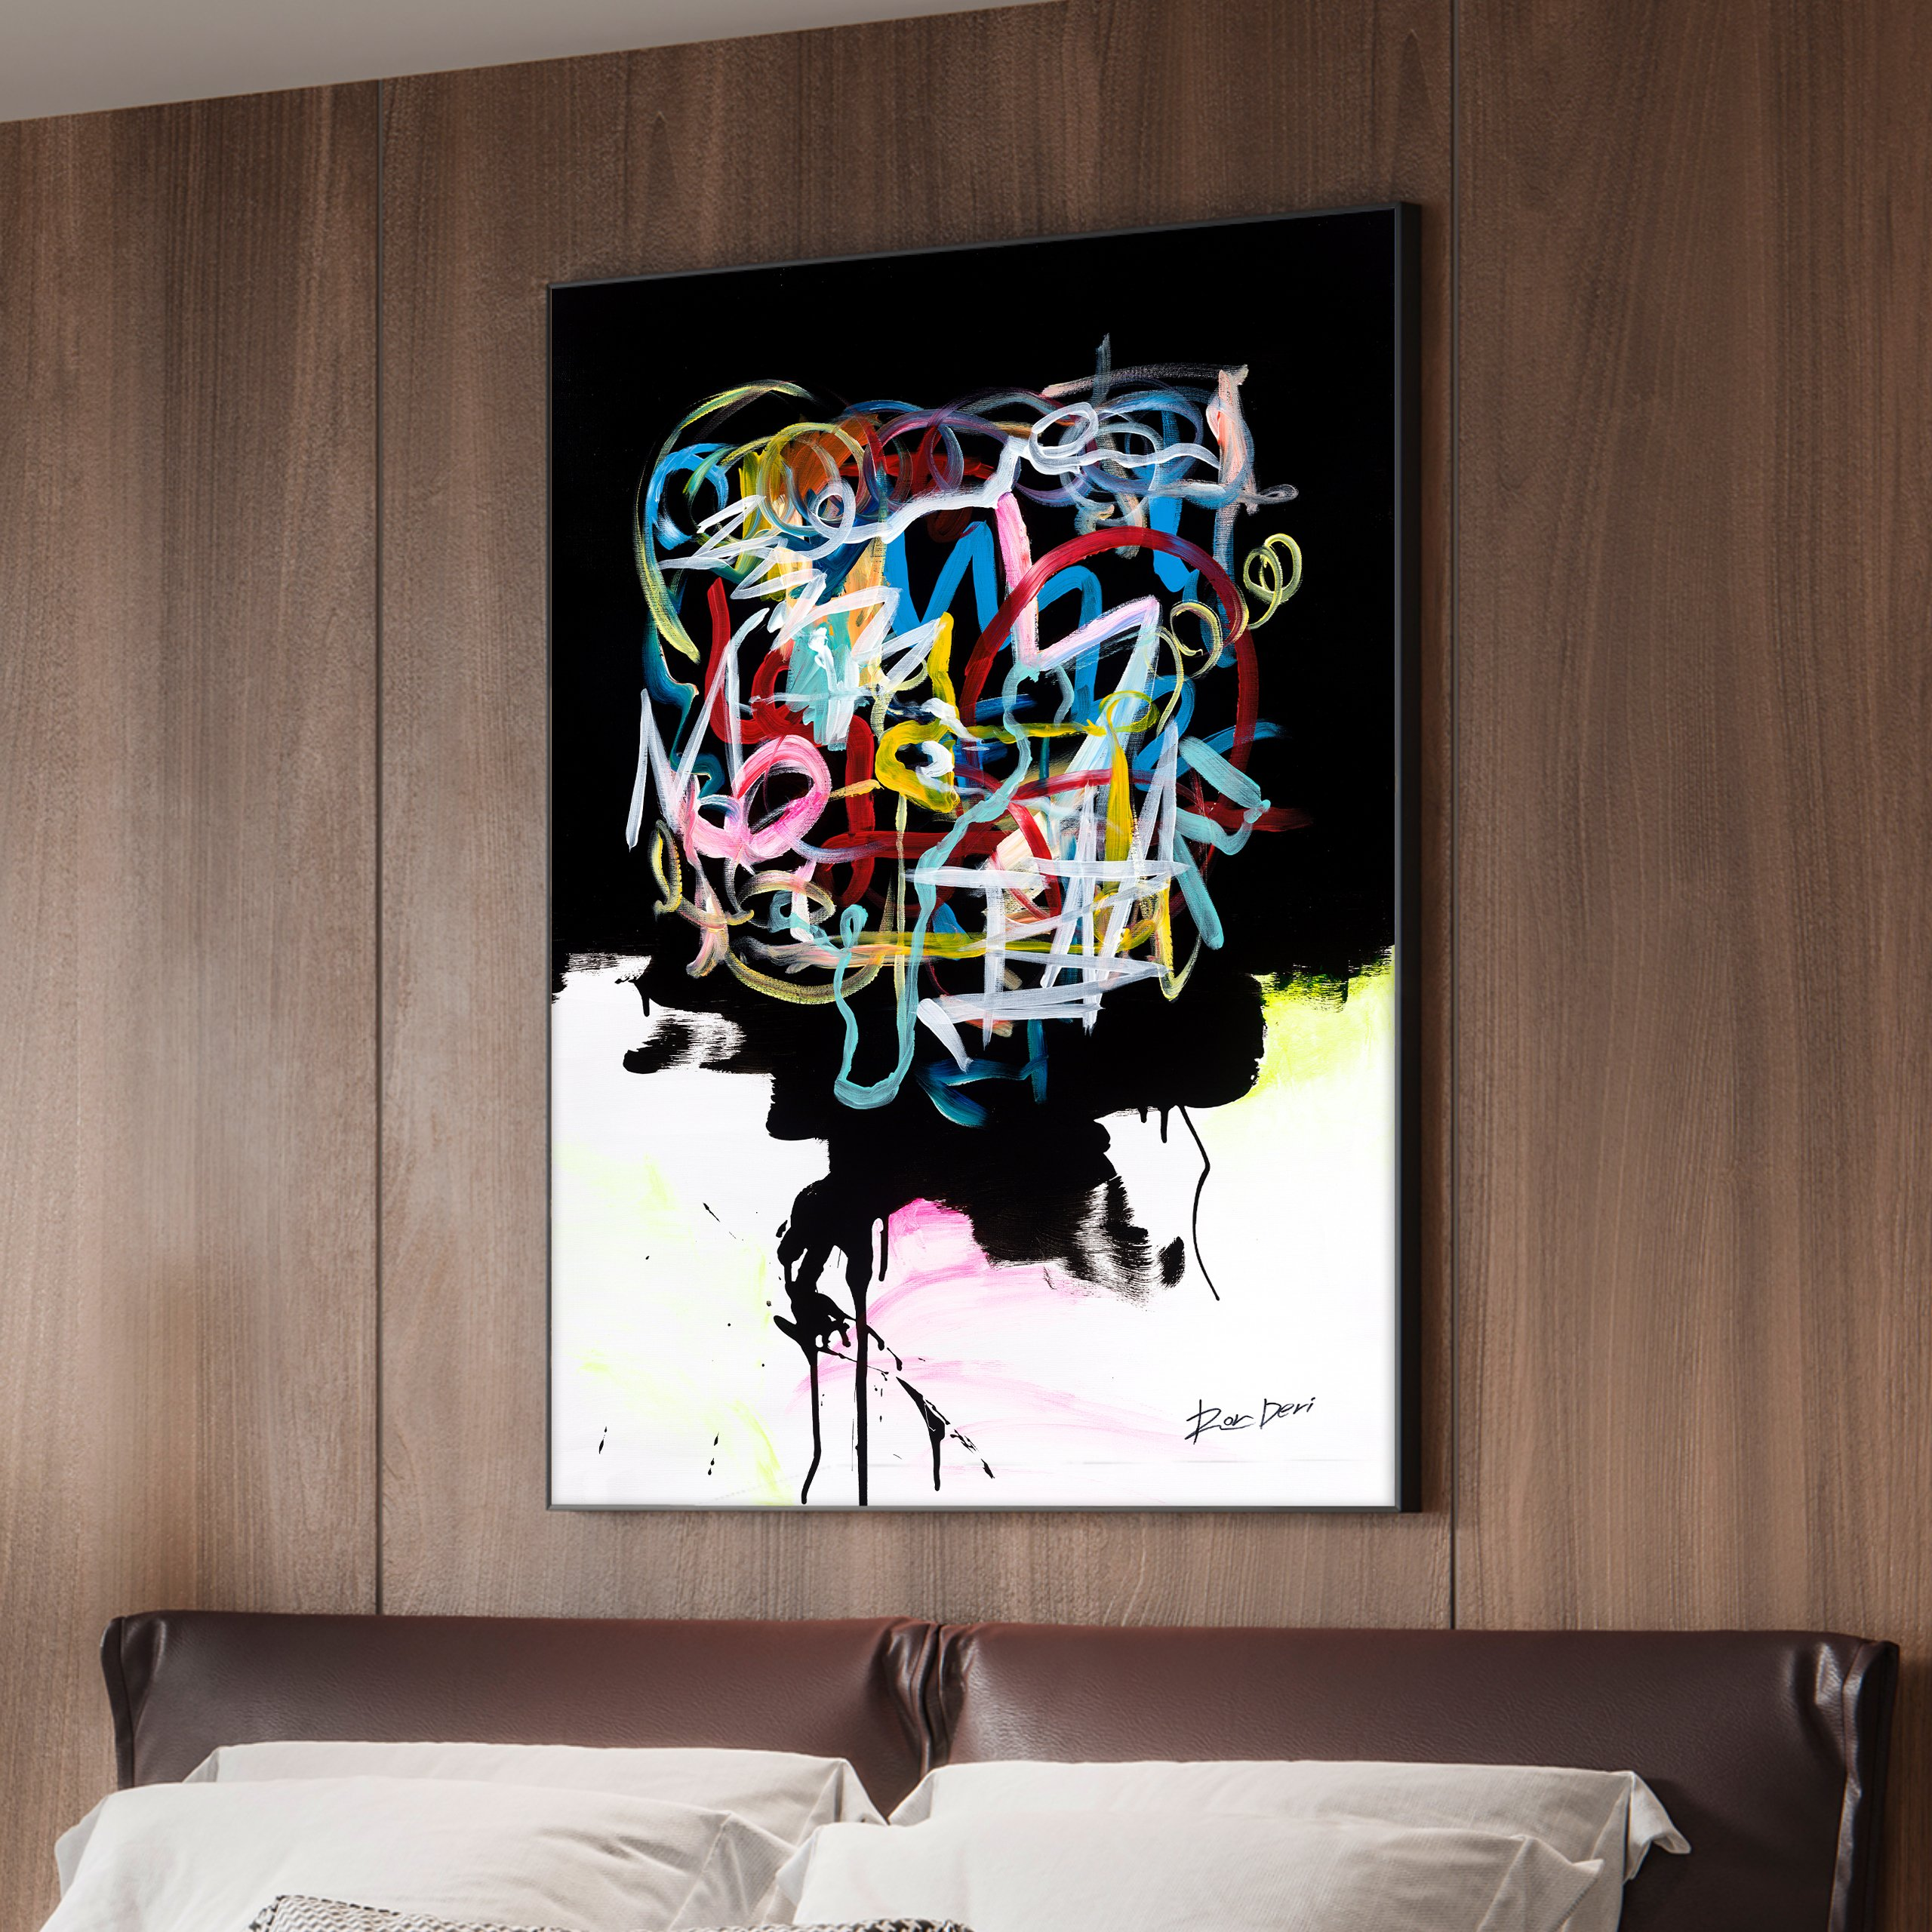 human-brain-ron-deri-contemporary-abstract-painting